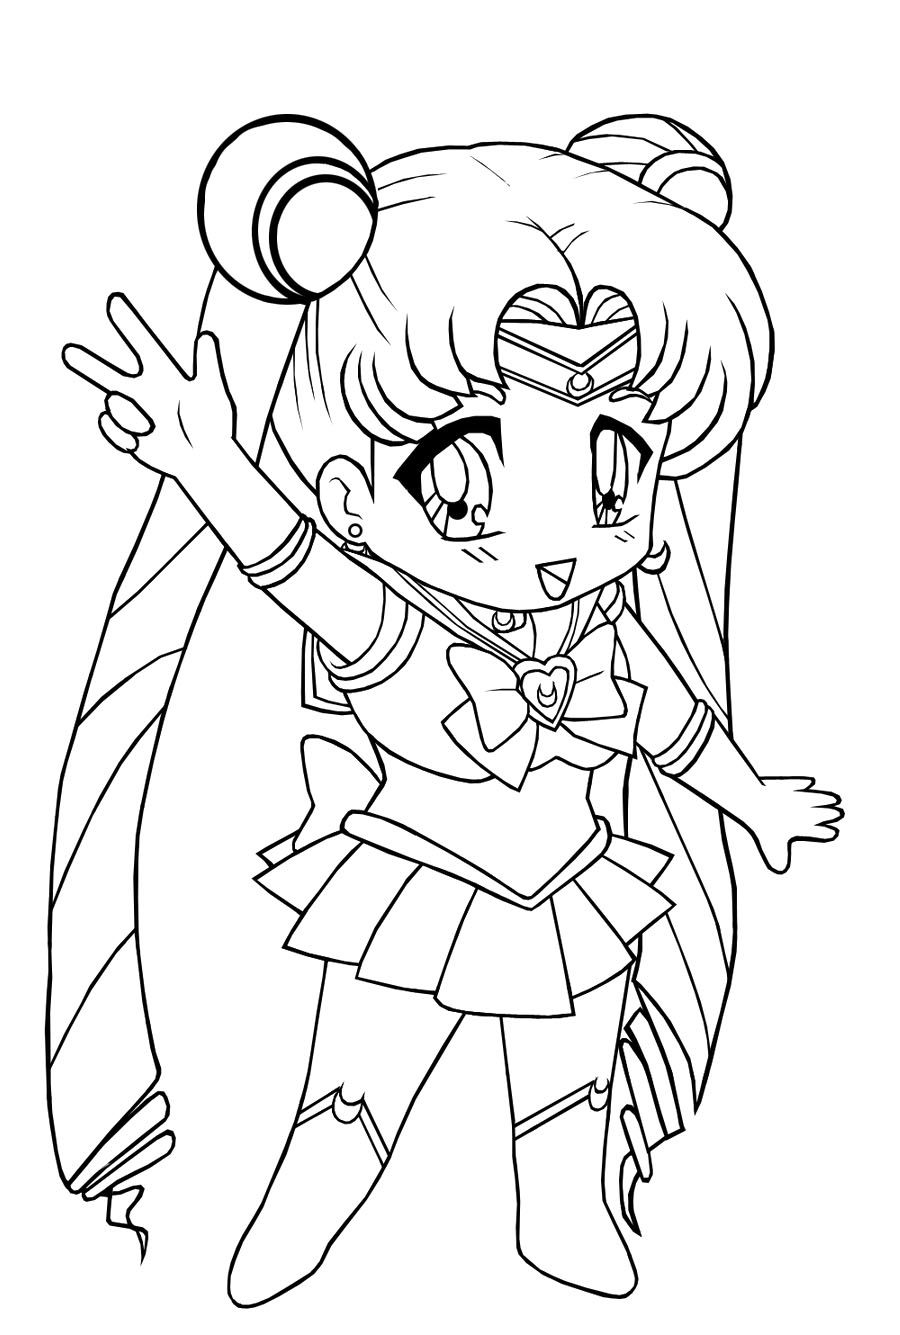 Chibi Sailor Moon Coloring Pages | sailor moon coloring pages ...